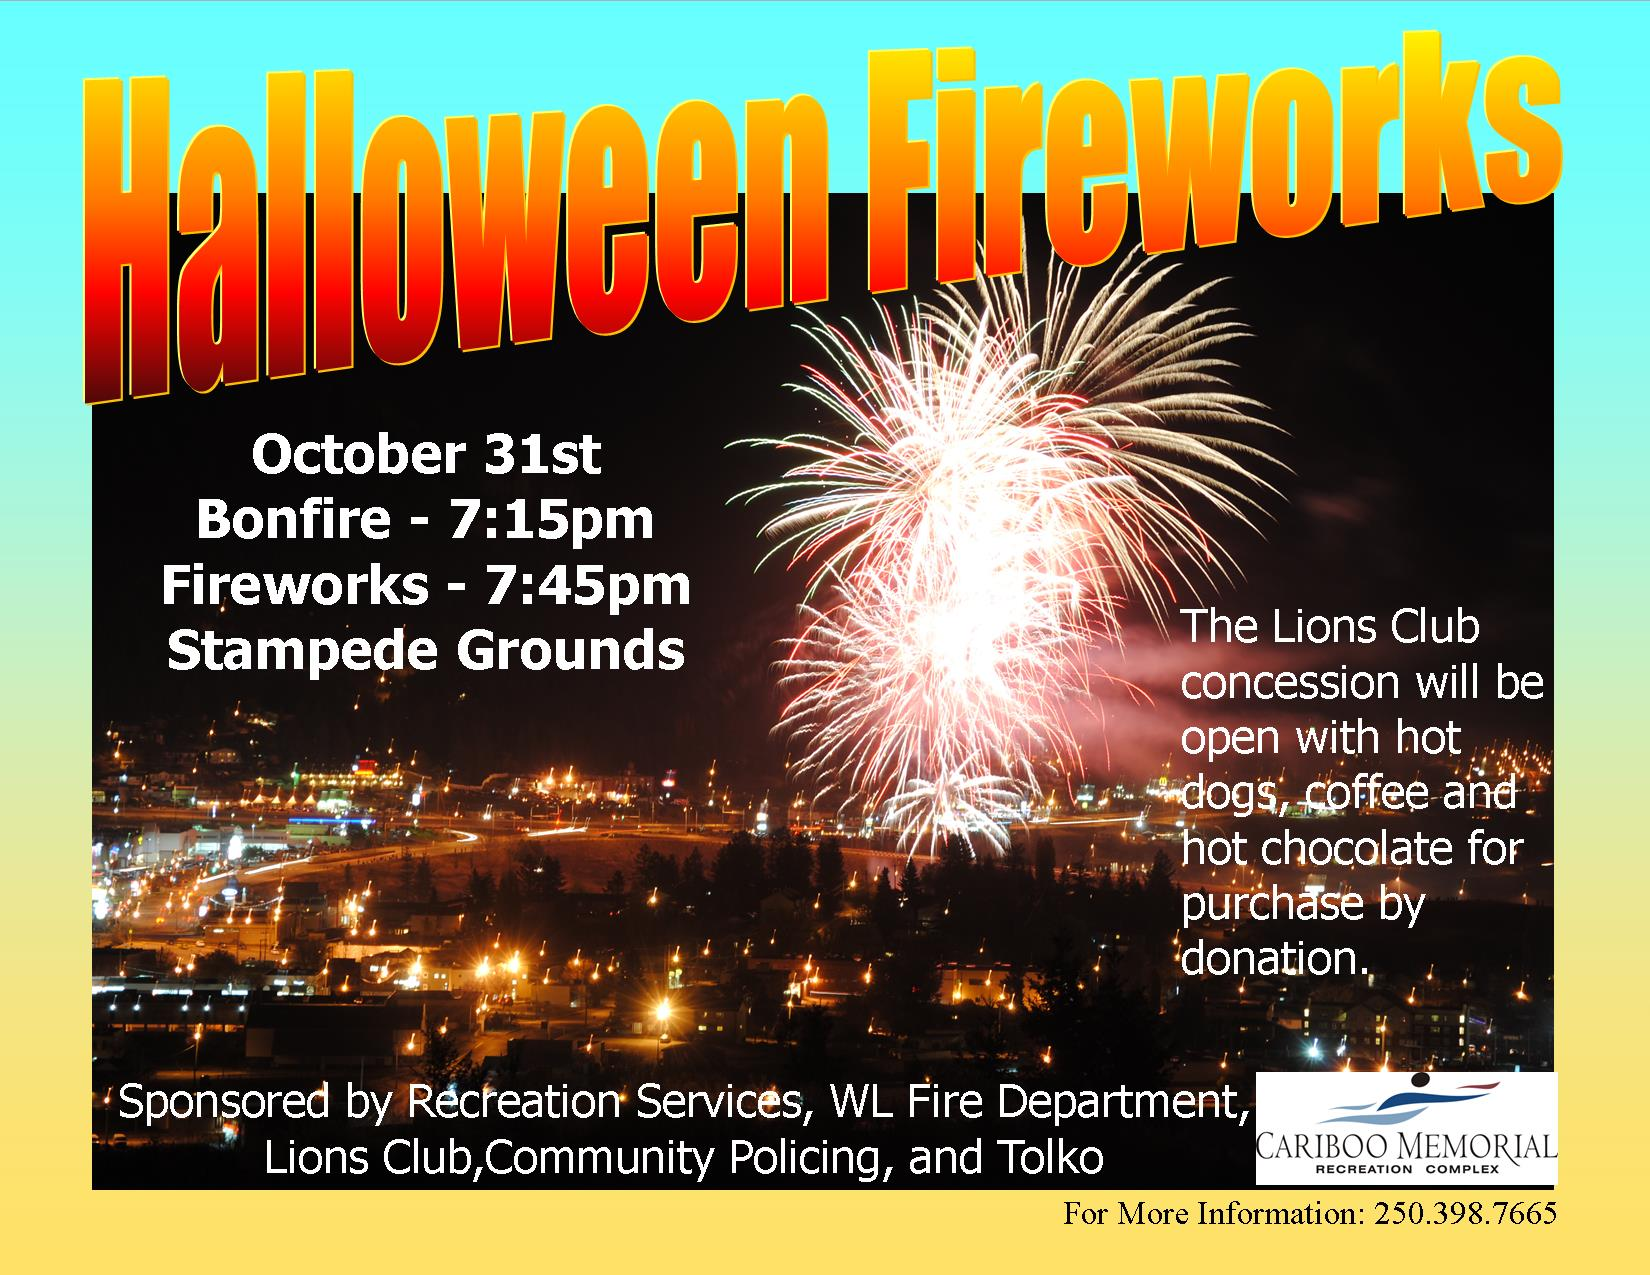 Halloween fireworks 2016 - oct 31